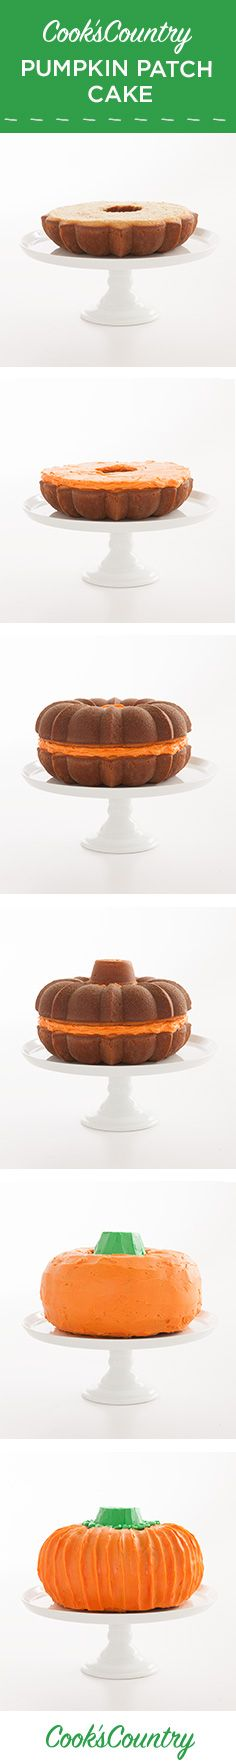 Searching for the perfect Halloween treat? Our Cook's Country Pumpkin Patch Cake is an impressive life-size pumpkin dessert packed with warm spice flavor and sweet buttercream icing. With two Bundt pans, (a cupcake!), and some Halloween spirit you can summon this dessert spectacle in a snap.